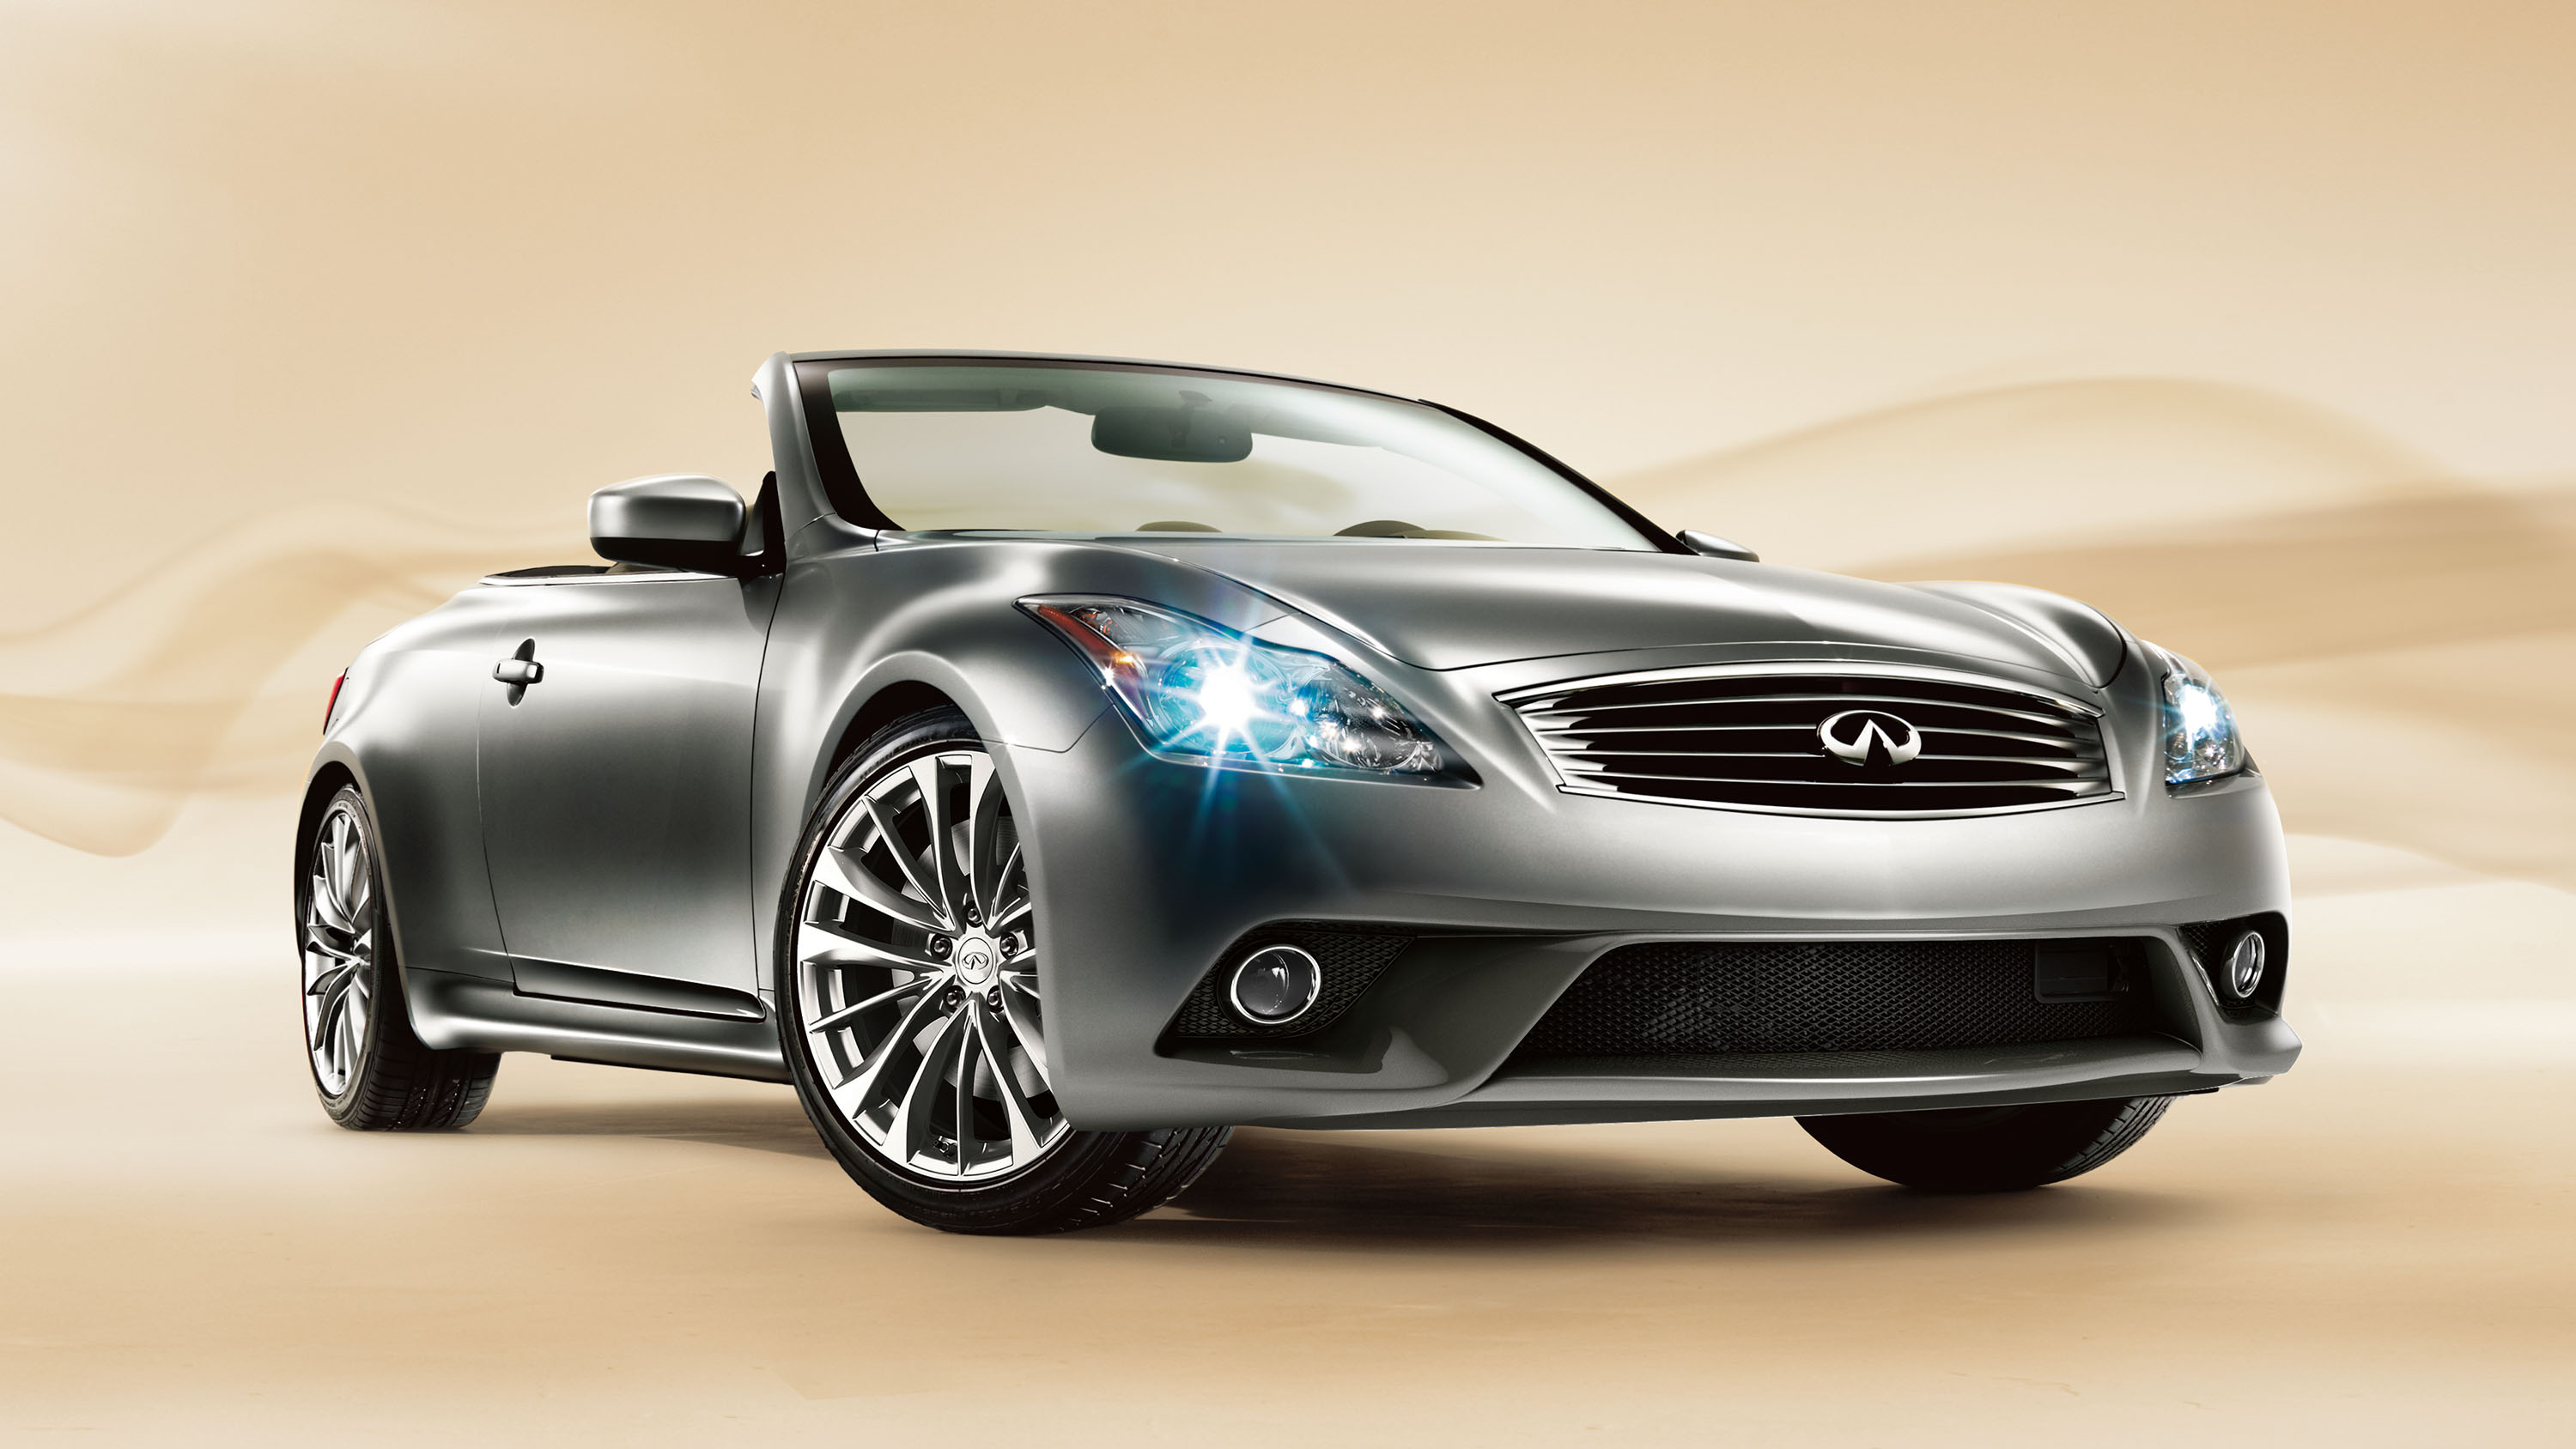 infinity convertible photo infiniti gallery pic picture